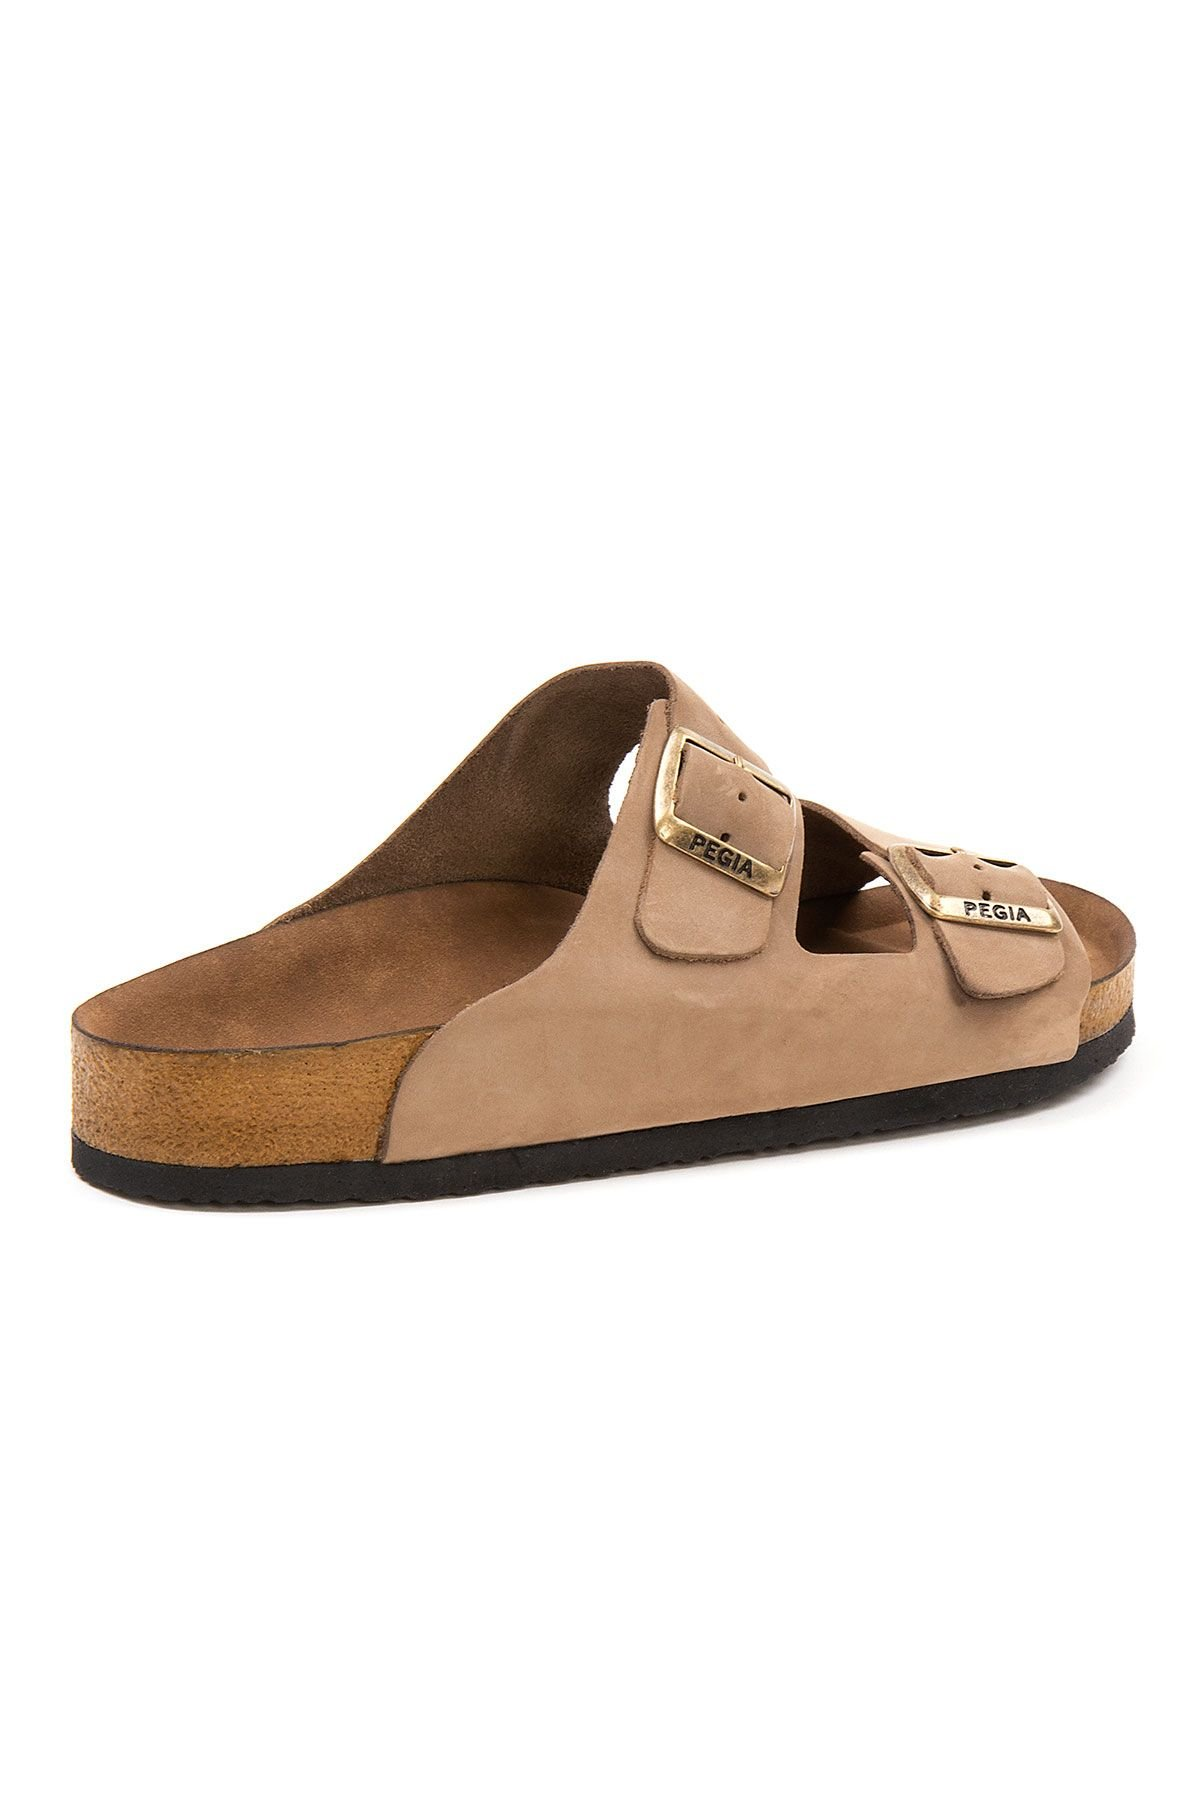 Pegia Men's Genuine Leather Slippers 215020 Sand-colored